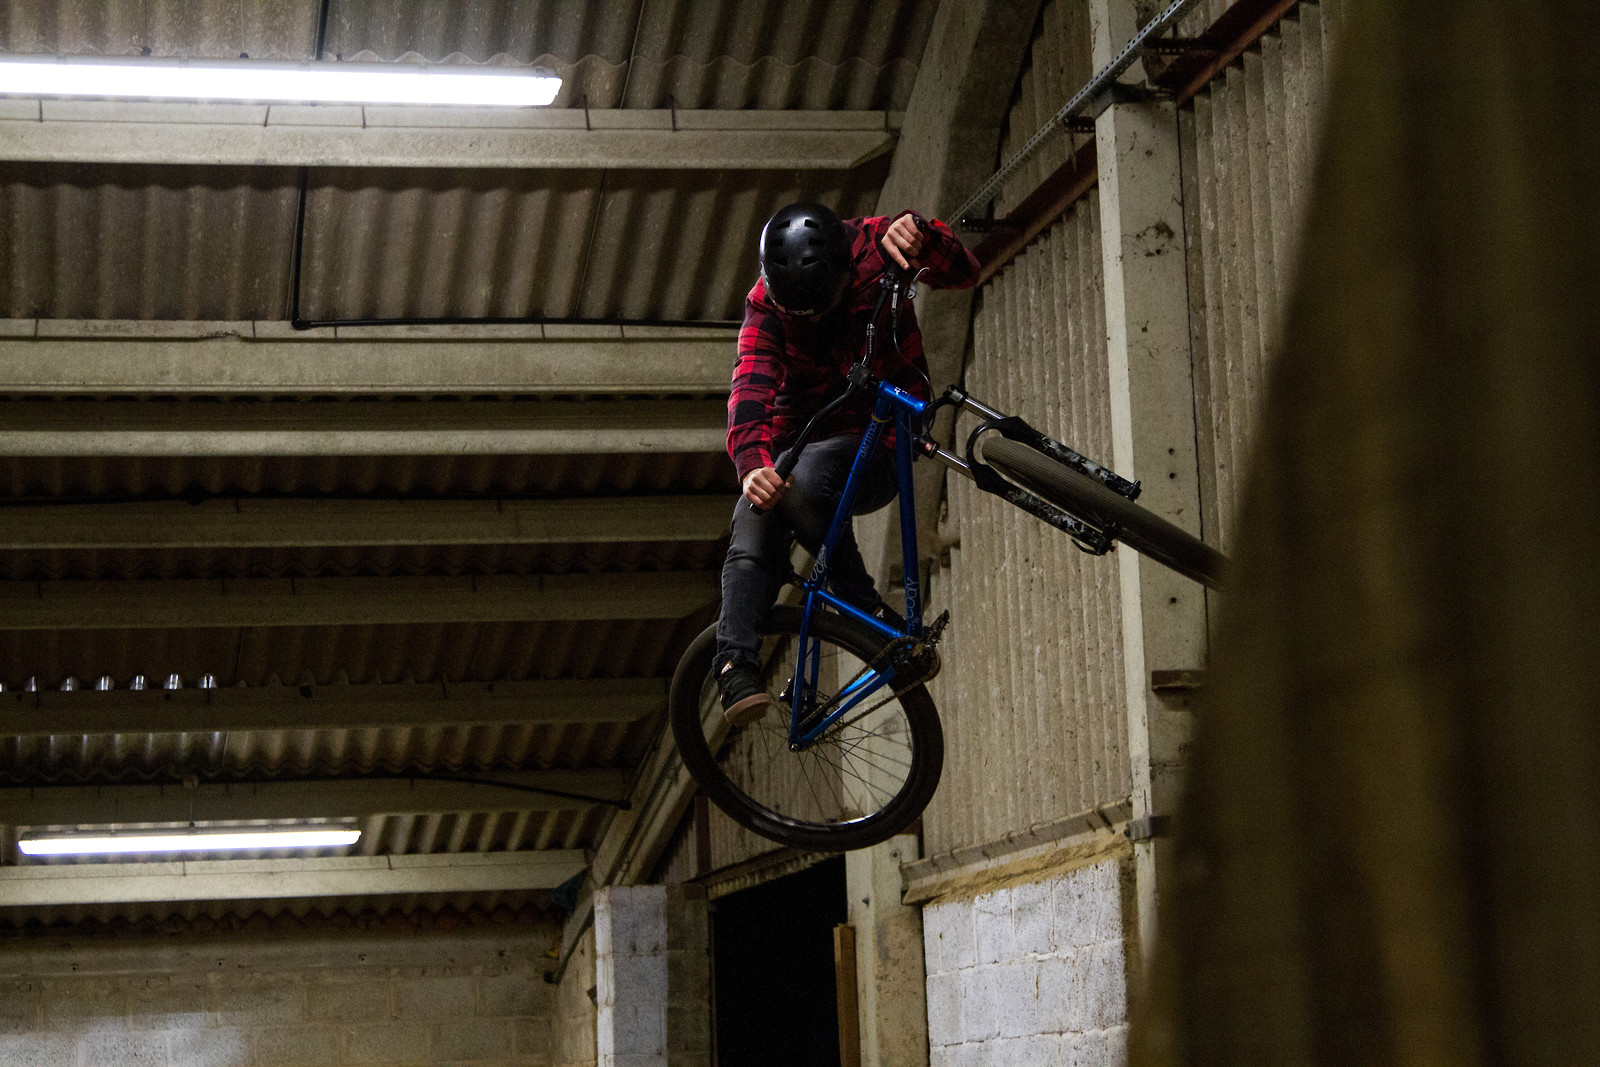 Barn Sessions - nickjames - Mountain Biking Pictures - Vital MTB